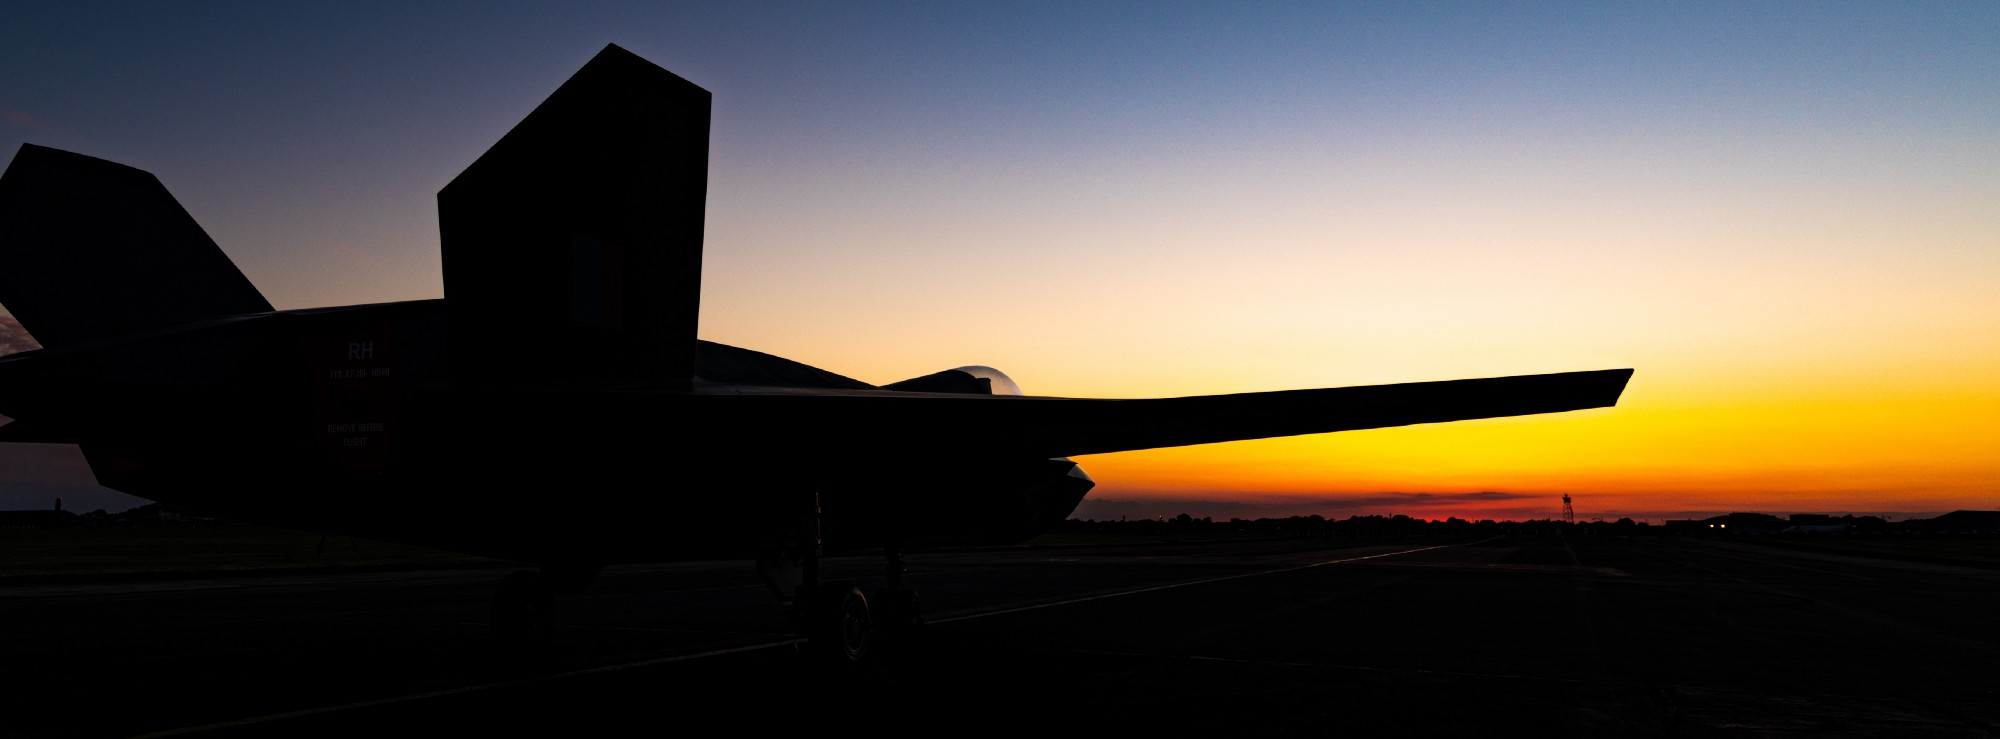 Silhouette of a Tempest jet